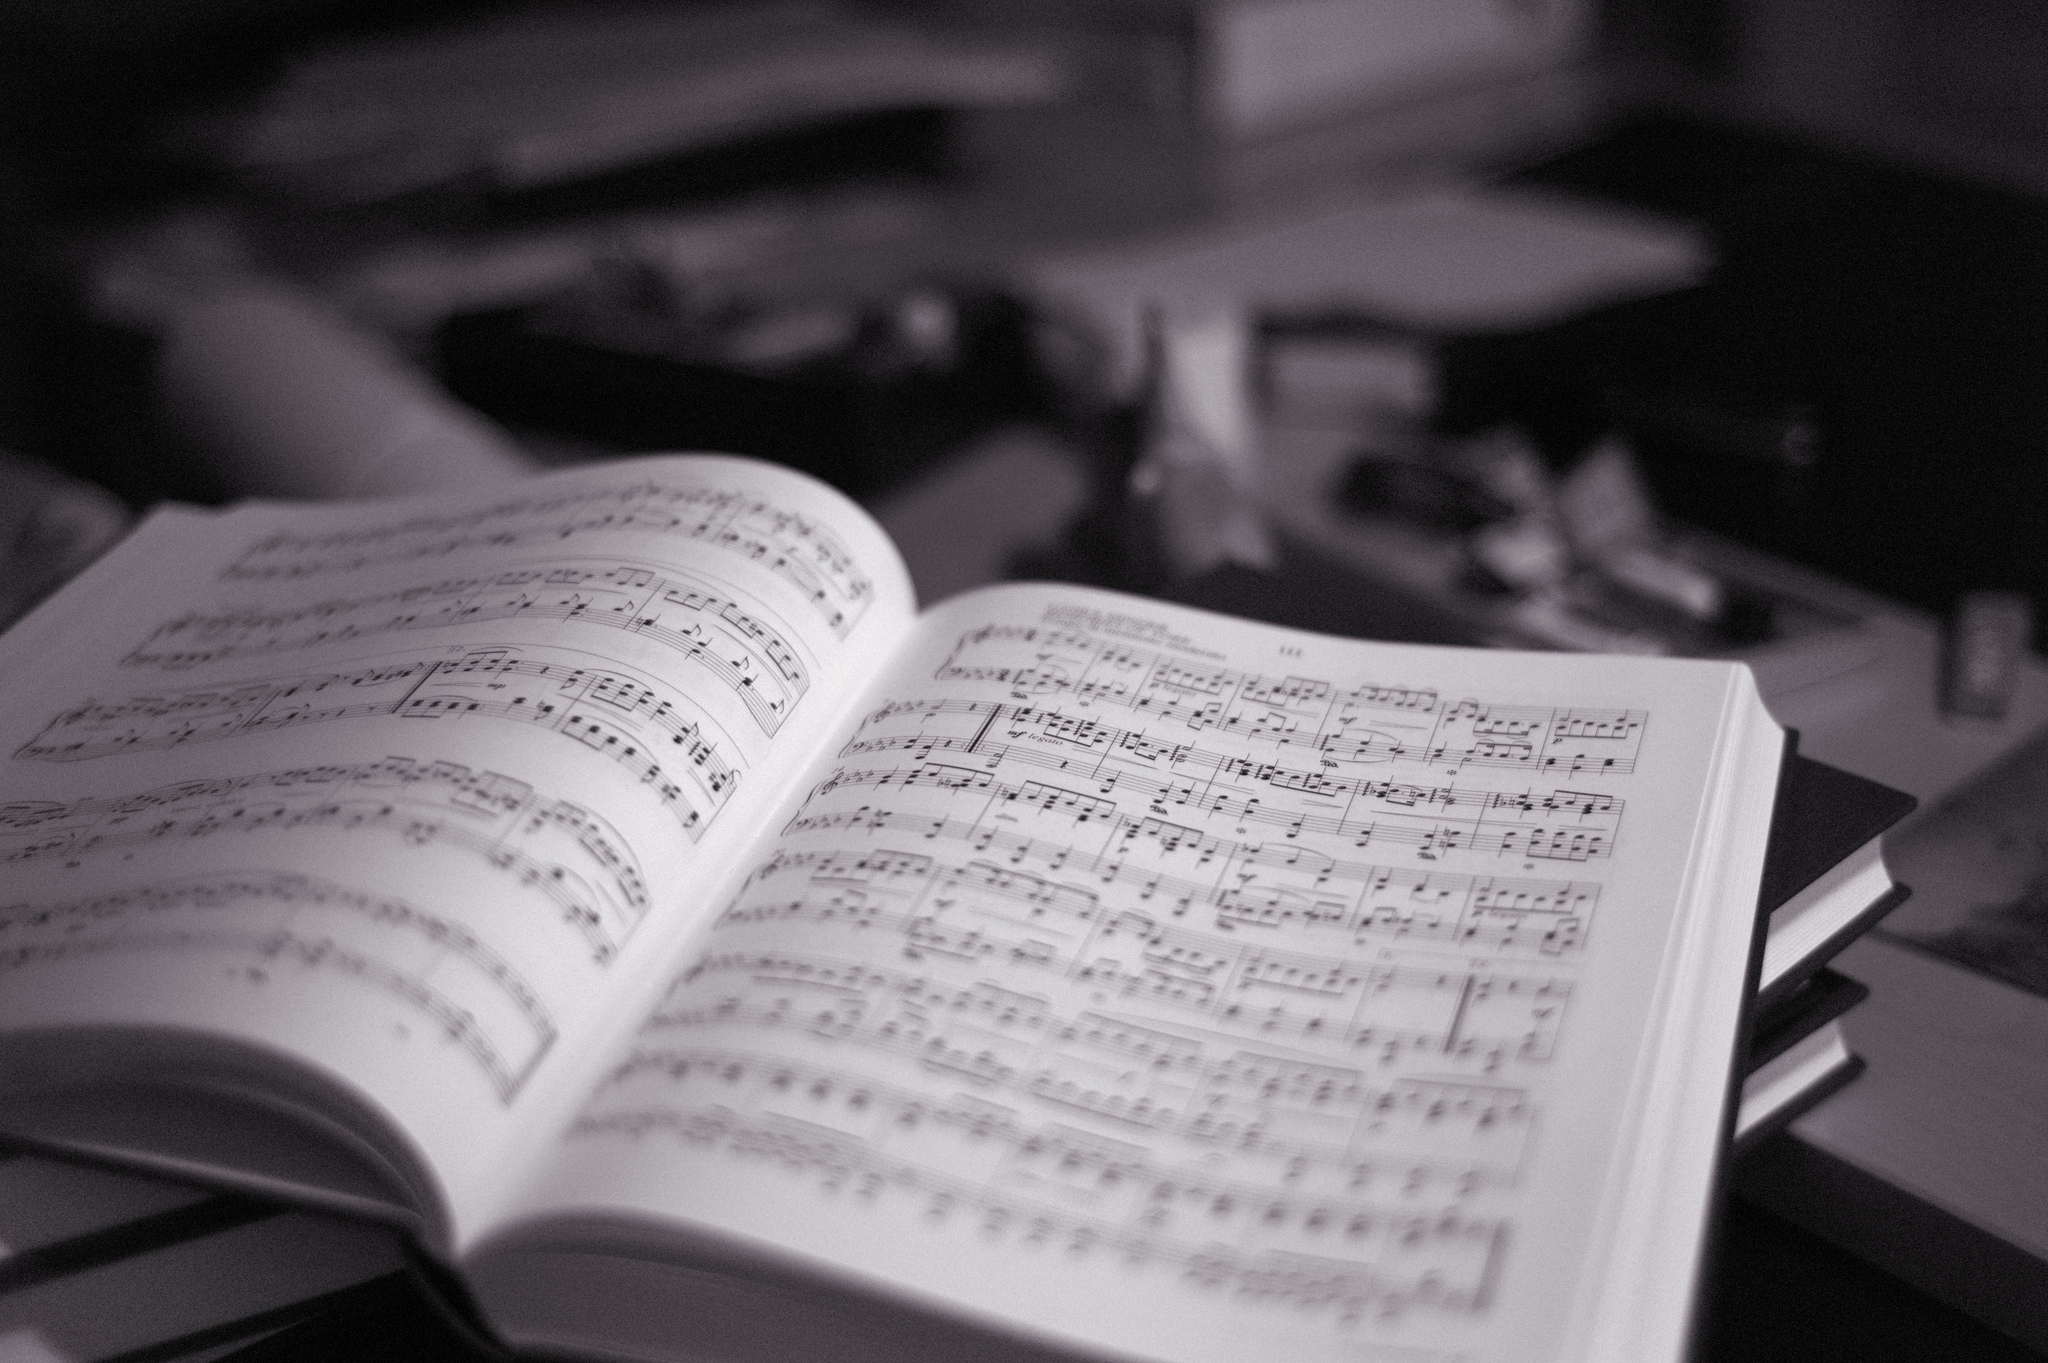 Black and white picture of a book of music sheets.